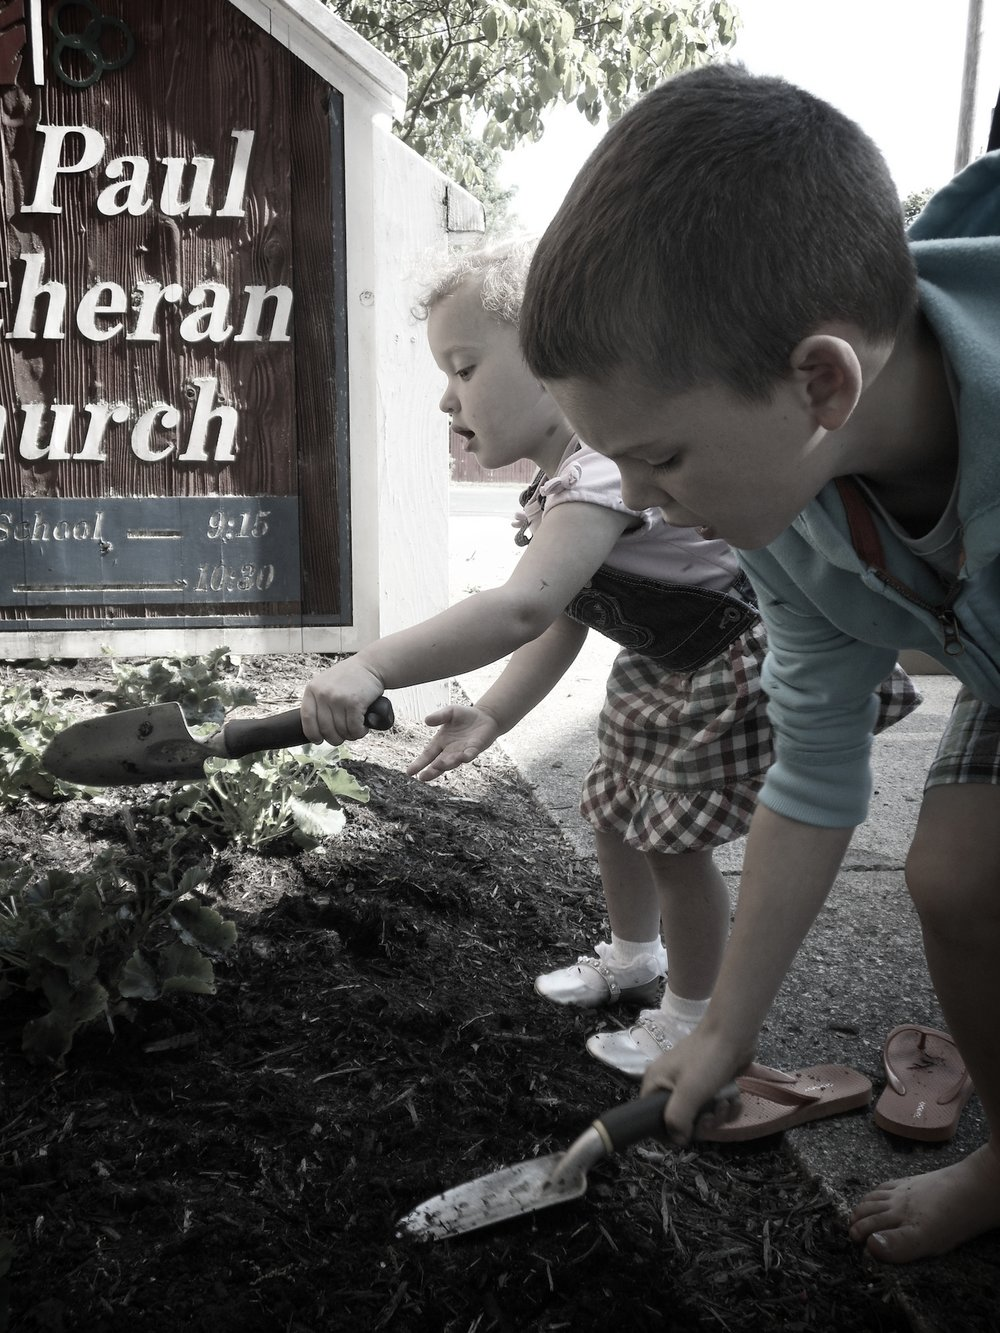 Kids at Sunday School planting flowers in front of church.jpg